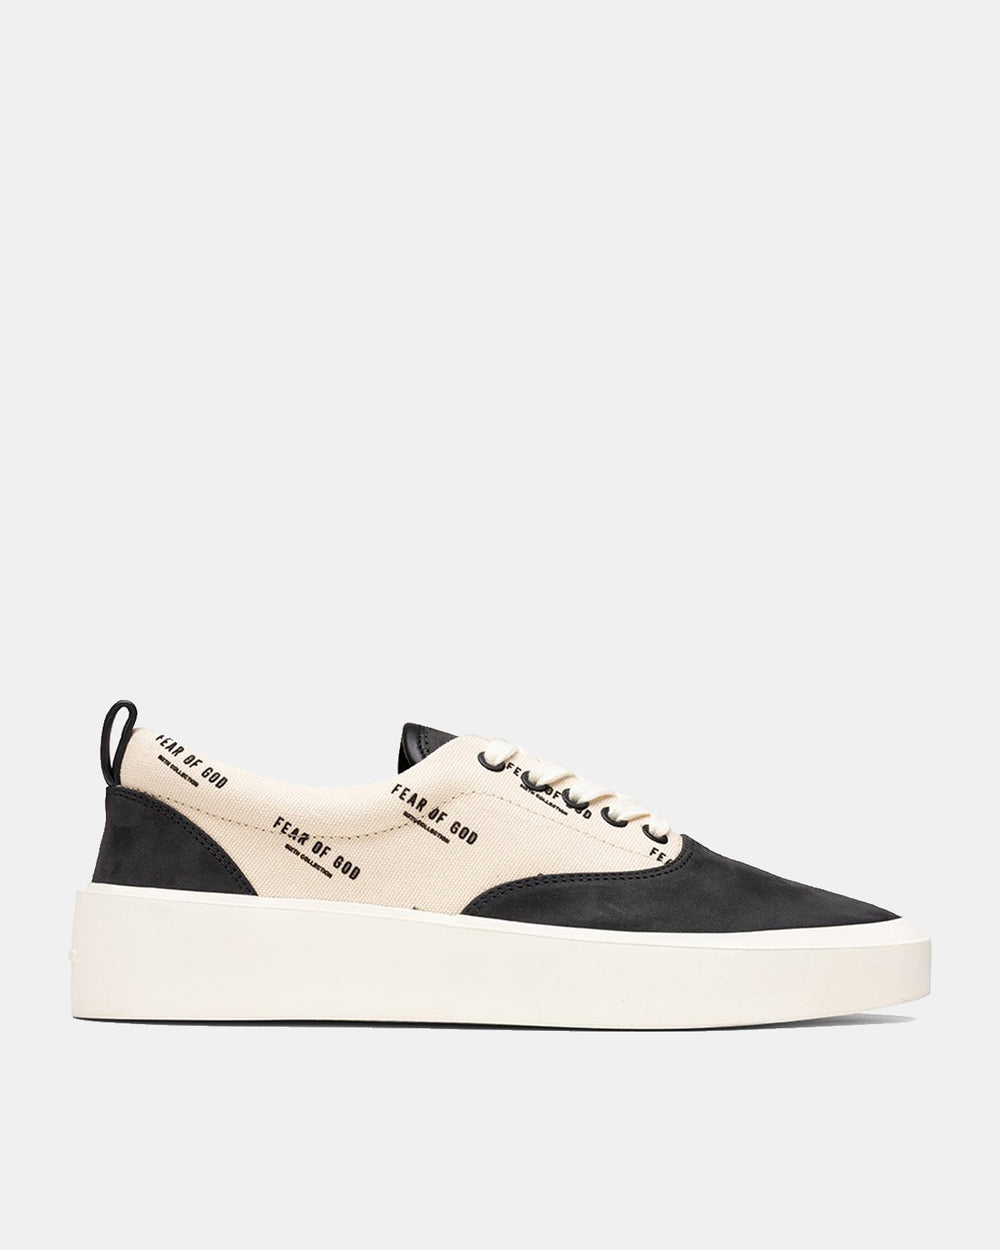 Fear of God - 101 Lace Up (Vintage Black | Cream)